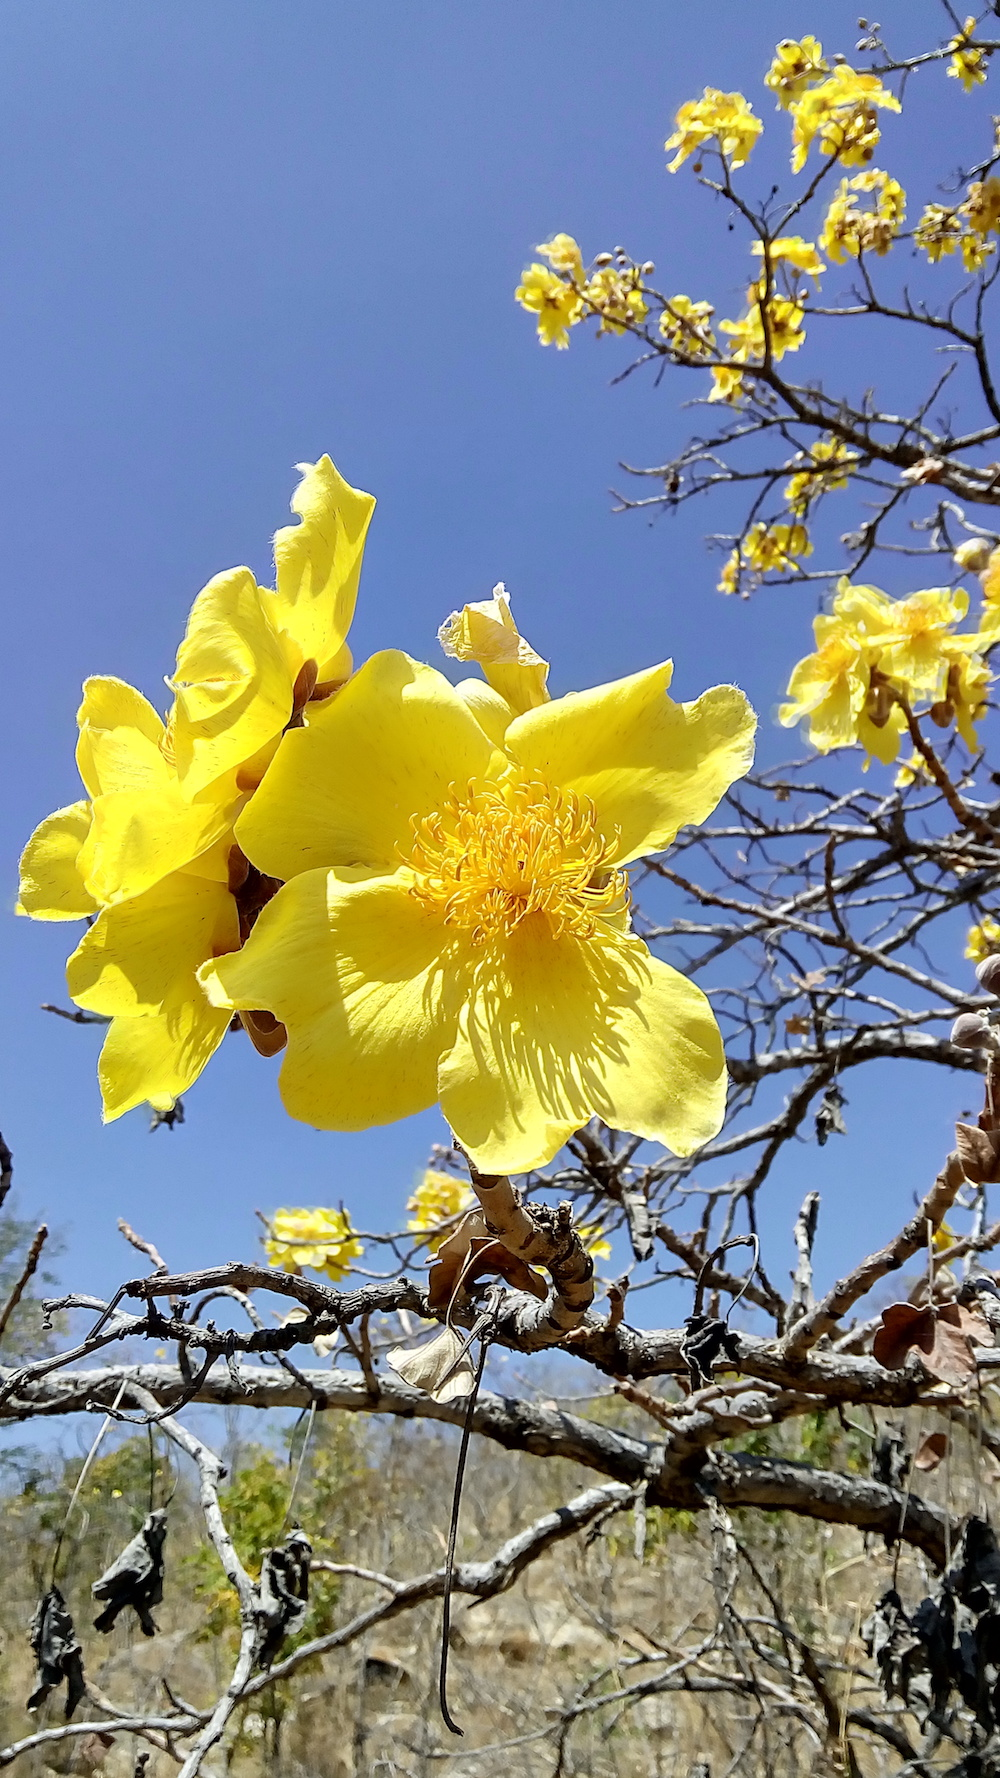 Cochlospernum religiosum (ಅರಿಶಿನ ಬುರುಗ) or Yellow Silk Cotton Tree in English. It is a short ornamental tree with showy, bright yellow, mildly fragrant flowers.